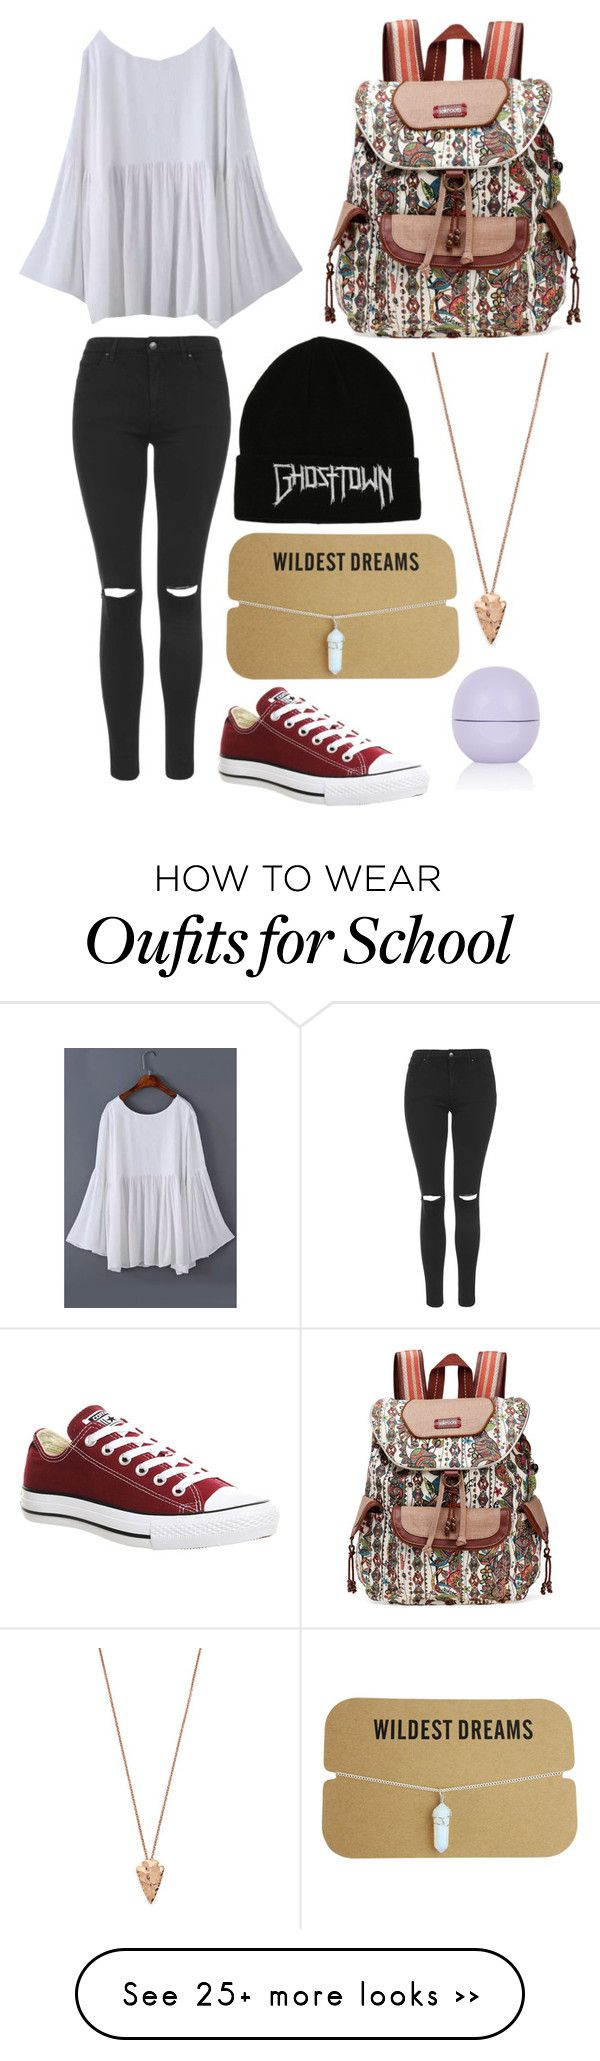 """Off to school!"" by just-a-hippie on Polyvore featuring Topshop, Sakroots, Pamela Love and Converse"